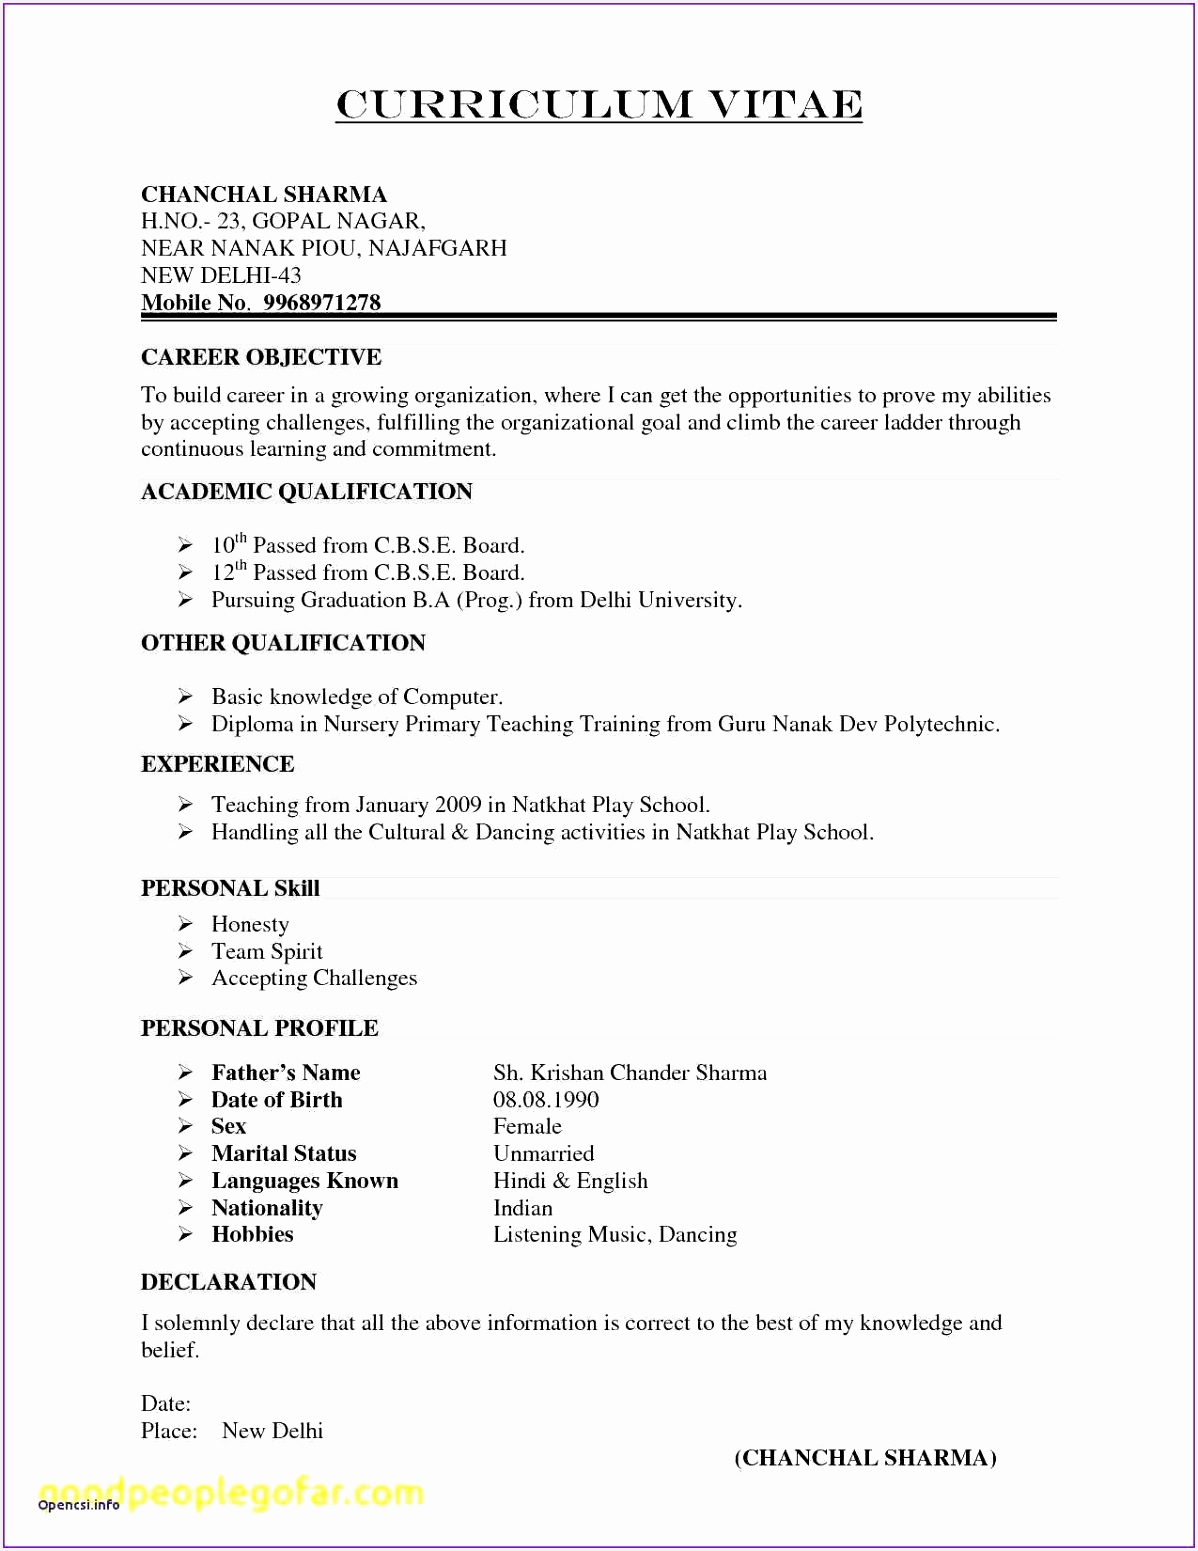 Microsoft Trainer Sample Resume Dcwig Elegant 53 Elegant Microsoft Word Free Resume Templates Awesome Resume15511198